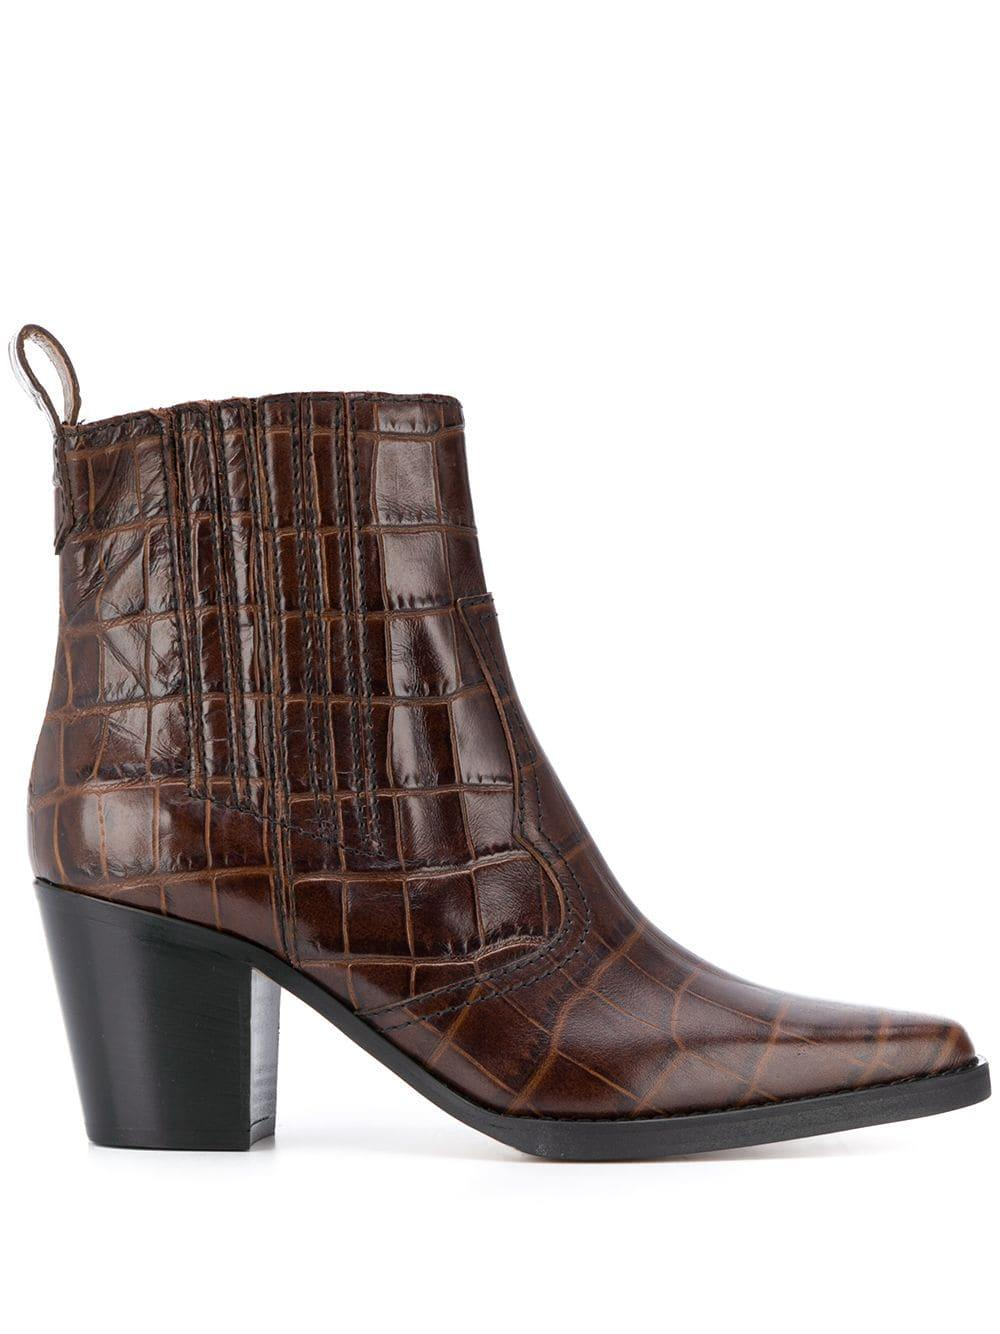 Western Croc Embroidery Block Heel Booties